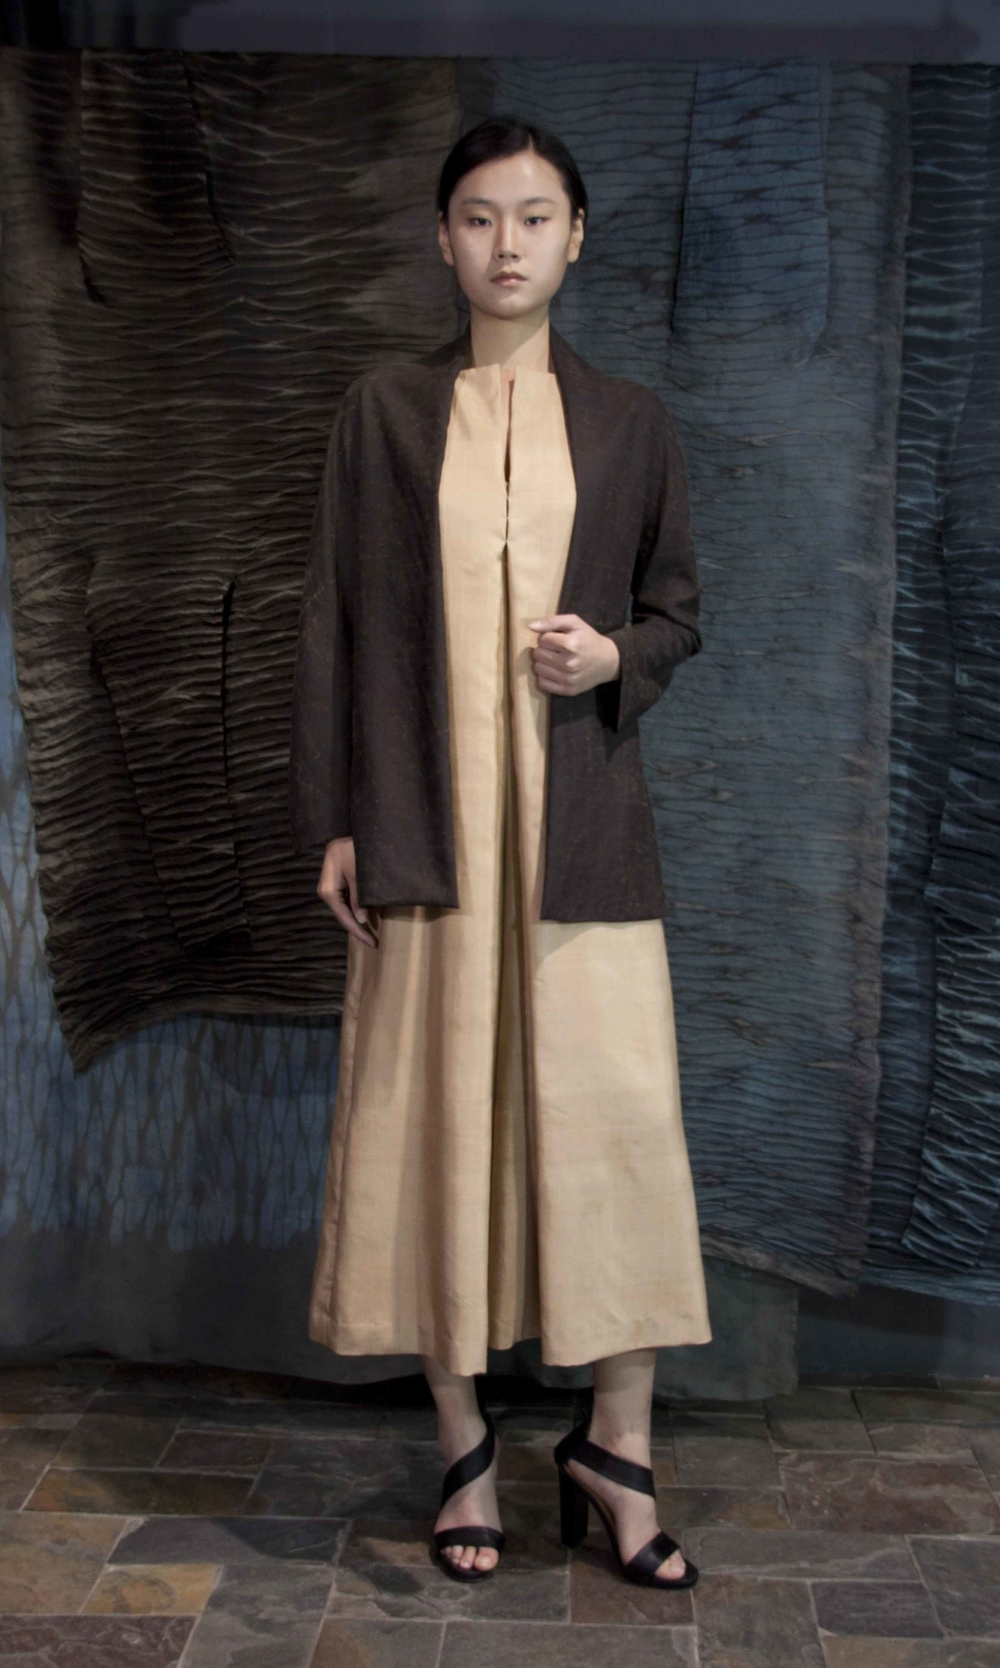 "28-23 Tea-silk jacket/ Loose Honan-silk jumpsuit  /   香云纱印花夹克  /   真丝宽松款连身裤                                                                                                                                                                                                                                                                                                   /* Style Definitions */  table.MsoNormalTable 	{mso-style-name:""Table Normal""; 	mso-tstyle-rowband-size:0; 	mso-tstyle-colband-size:0; 	mso-style-noshow:yes; 	mso-style-priority:99; 	mso-style-qformat:yes; 	mso-style-parent:""""; 	mso-padding-alt:0in 5.4pt 0in 5.4pt; 	mso-para-margin-top:0in; 	mso-para-margin-right:0in; 	mso-para-margin-bottom:10.0pt; 	mso-para-margin-left:0in; 	line-height:115%; 	mso-pagination:widow-orphan; 	font-size:11.0pt; 	font-family:""Calibri"",""sans-serif""; 	mso-ascii-font-family:Calibri; 	mso-ascii-theme-font:minor-latin; 	mso-hansi-font-family:Calibri; 	mso-hansi-theme-font:minor-latin; 	mso-bidi-font-family:""Times New Roman""; 	mso-bidi-theme-font:minor-bidi;}"